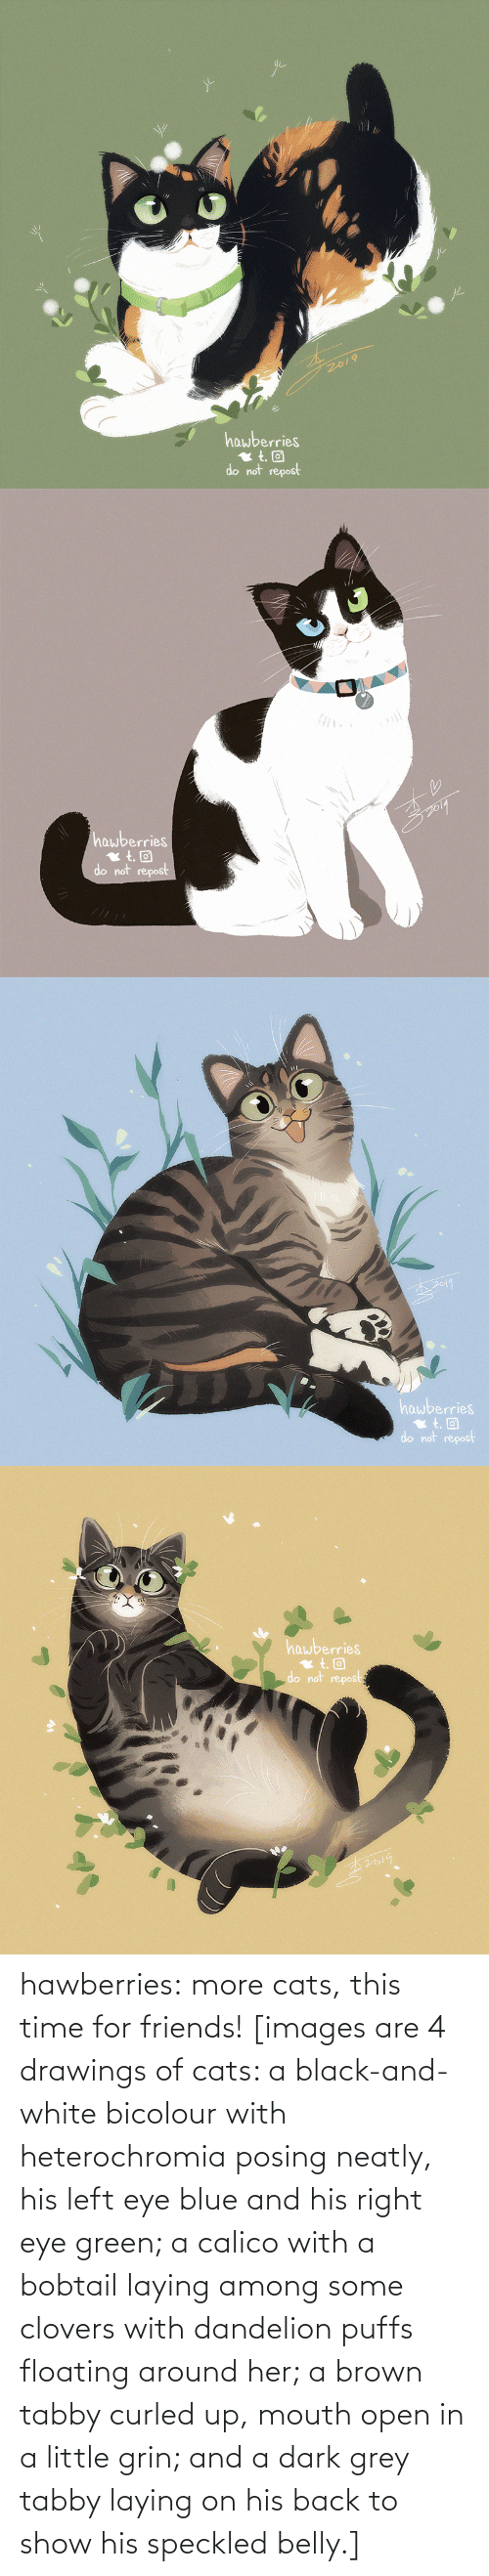 Belly: 2019  hawberries  do not repost   hawberries  do not repost   hawberries  do not repost   hawberries  do not repost hawberries: more cats, this time for friends! [images are 4 drawings of cats: a black-and-white bicolour with heterochromia posing neatly, his left eye blue and his right eye green; a calico with a bobtail laying among some clovers with dandelion puffs floating around her; a brown tabby curled up, mouth open in a little grin; and a dark grey tabby laying on his back to show his speckled belly.]